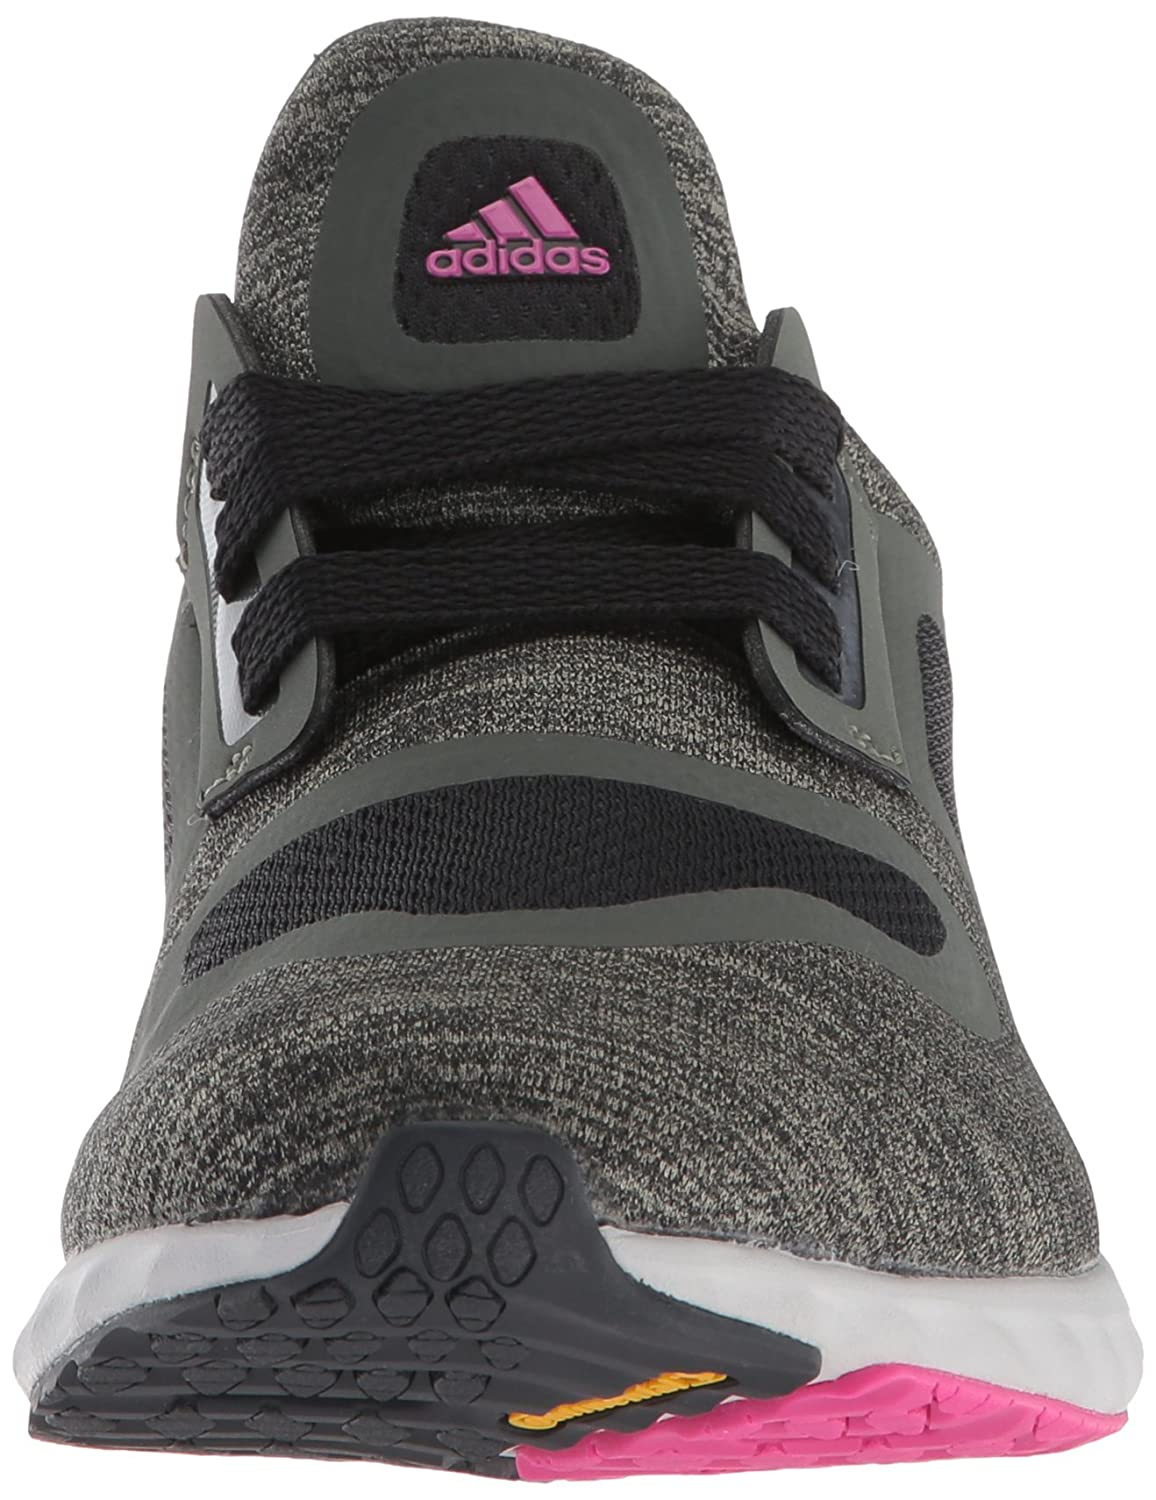 adidas Originals Women's Edge Lux Clima Running Shoe B077XKMYBF 6 B(M) US|Base Green/Real Magenta/Night Cargo